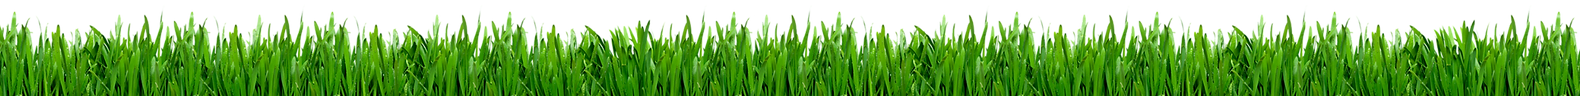 grass3_edited_edited_edited.png